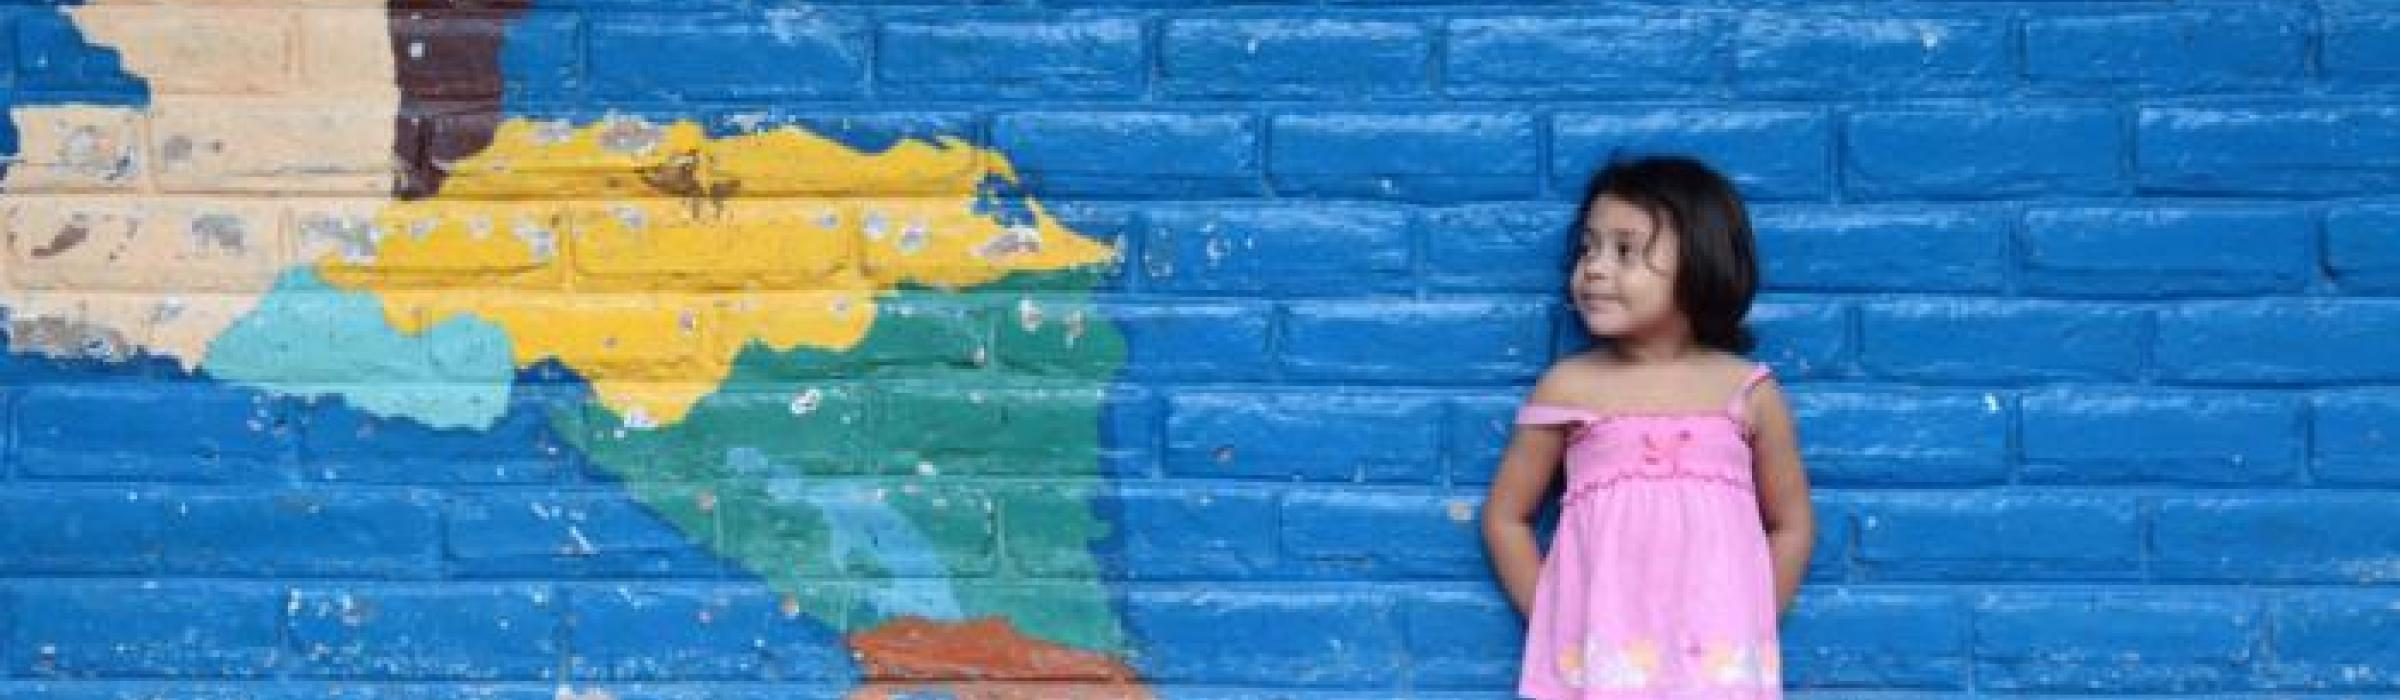 Stock photo of a girl standing against a wall in El Salvador.